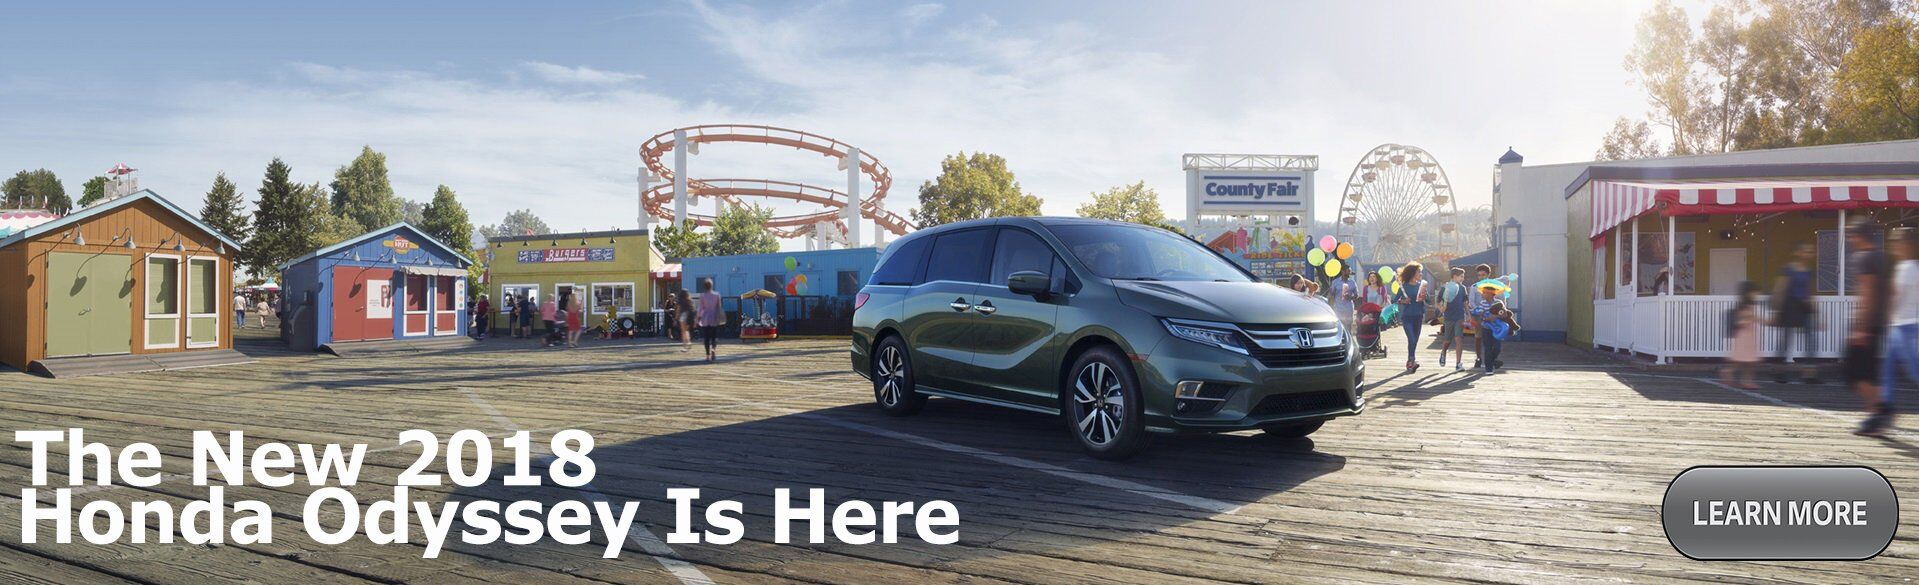 2018 Honda Odyssey Grants Pass